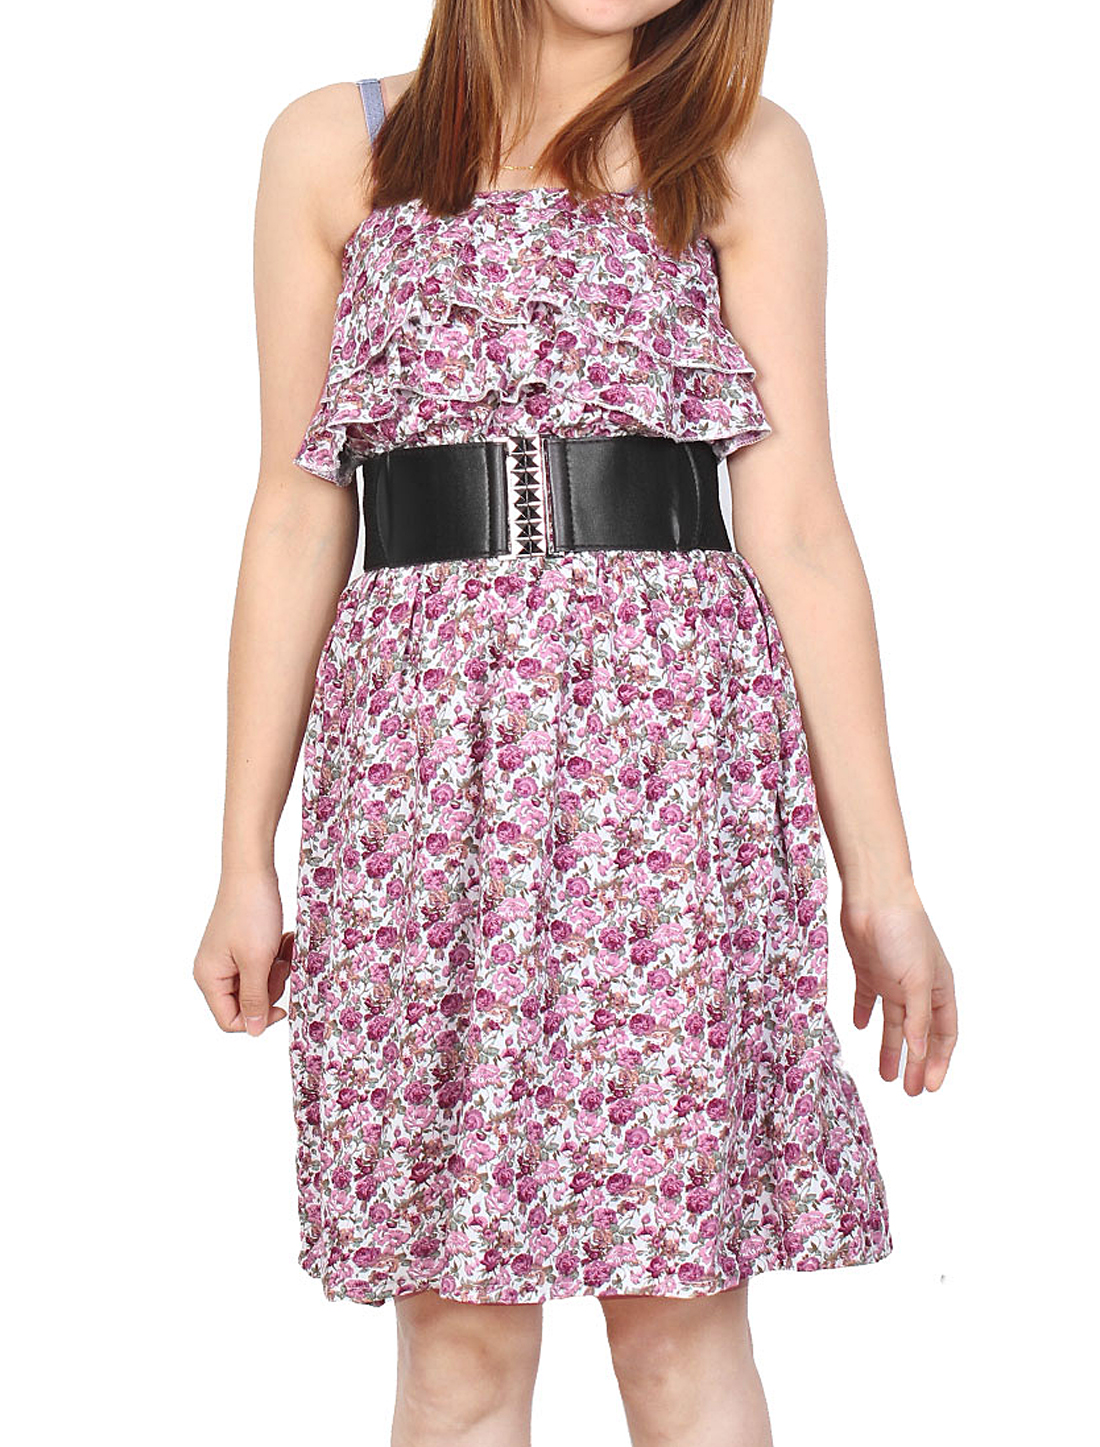 Ruffle Bust Elastic Waist Pink Flowers Belted Tube Dress XS